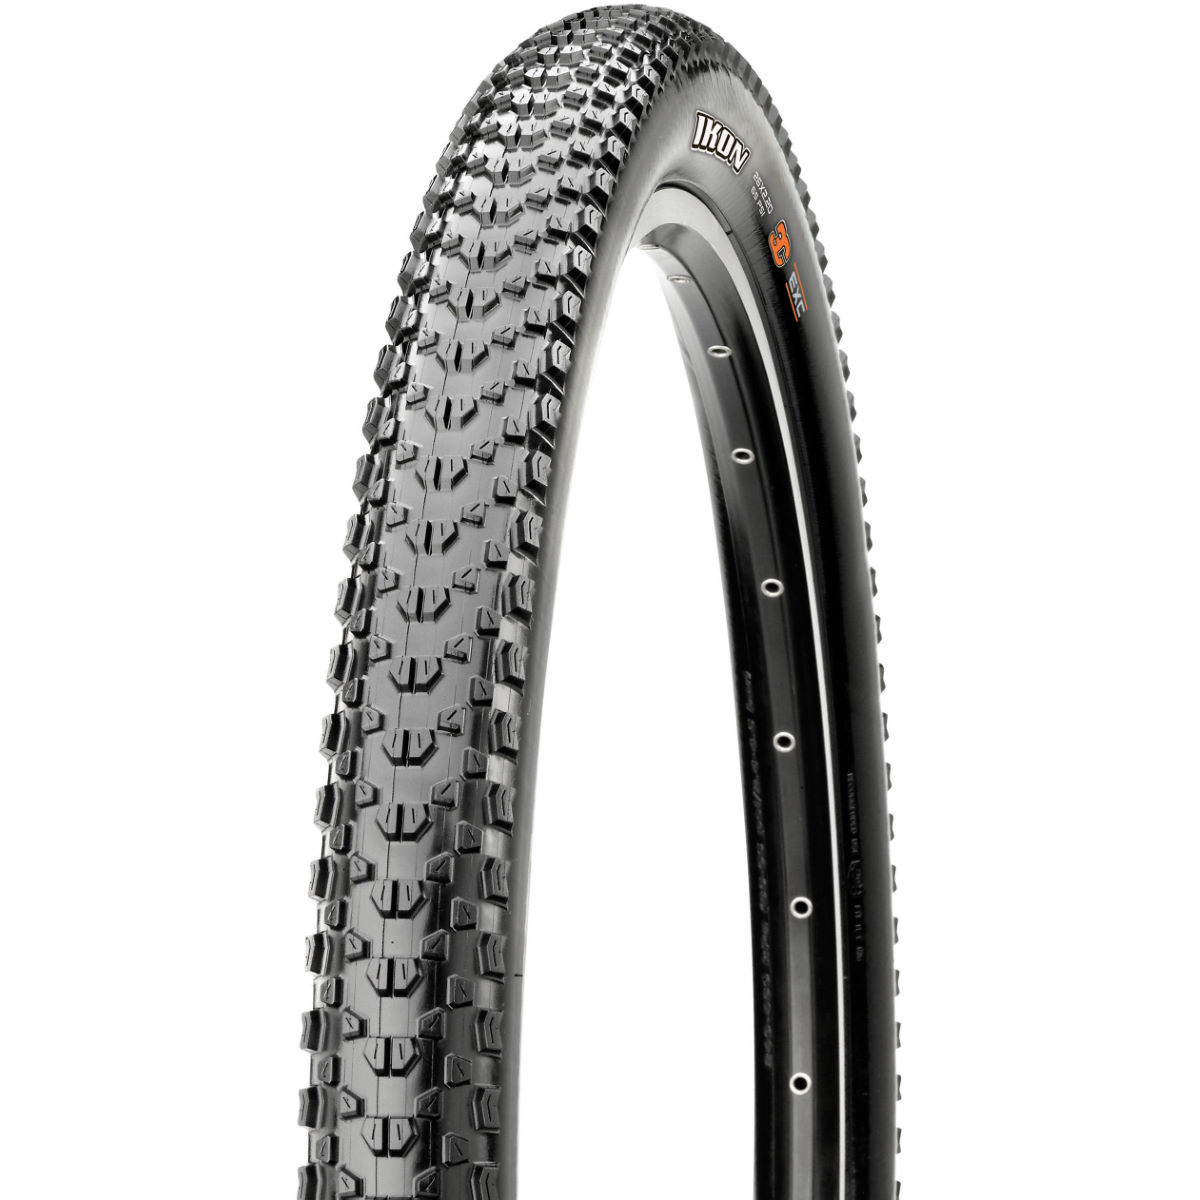 Maxxis Maxxis Ikon 3C EXO TR 29er Folding Tyre   Tyres